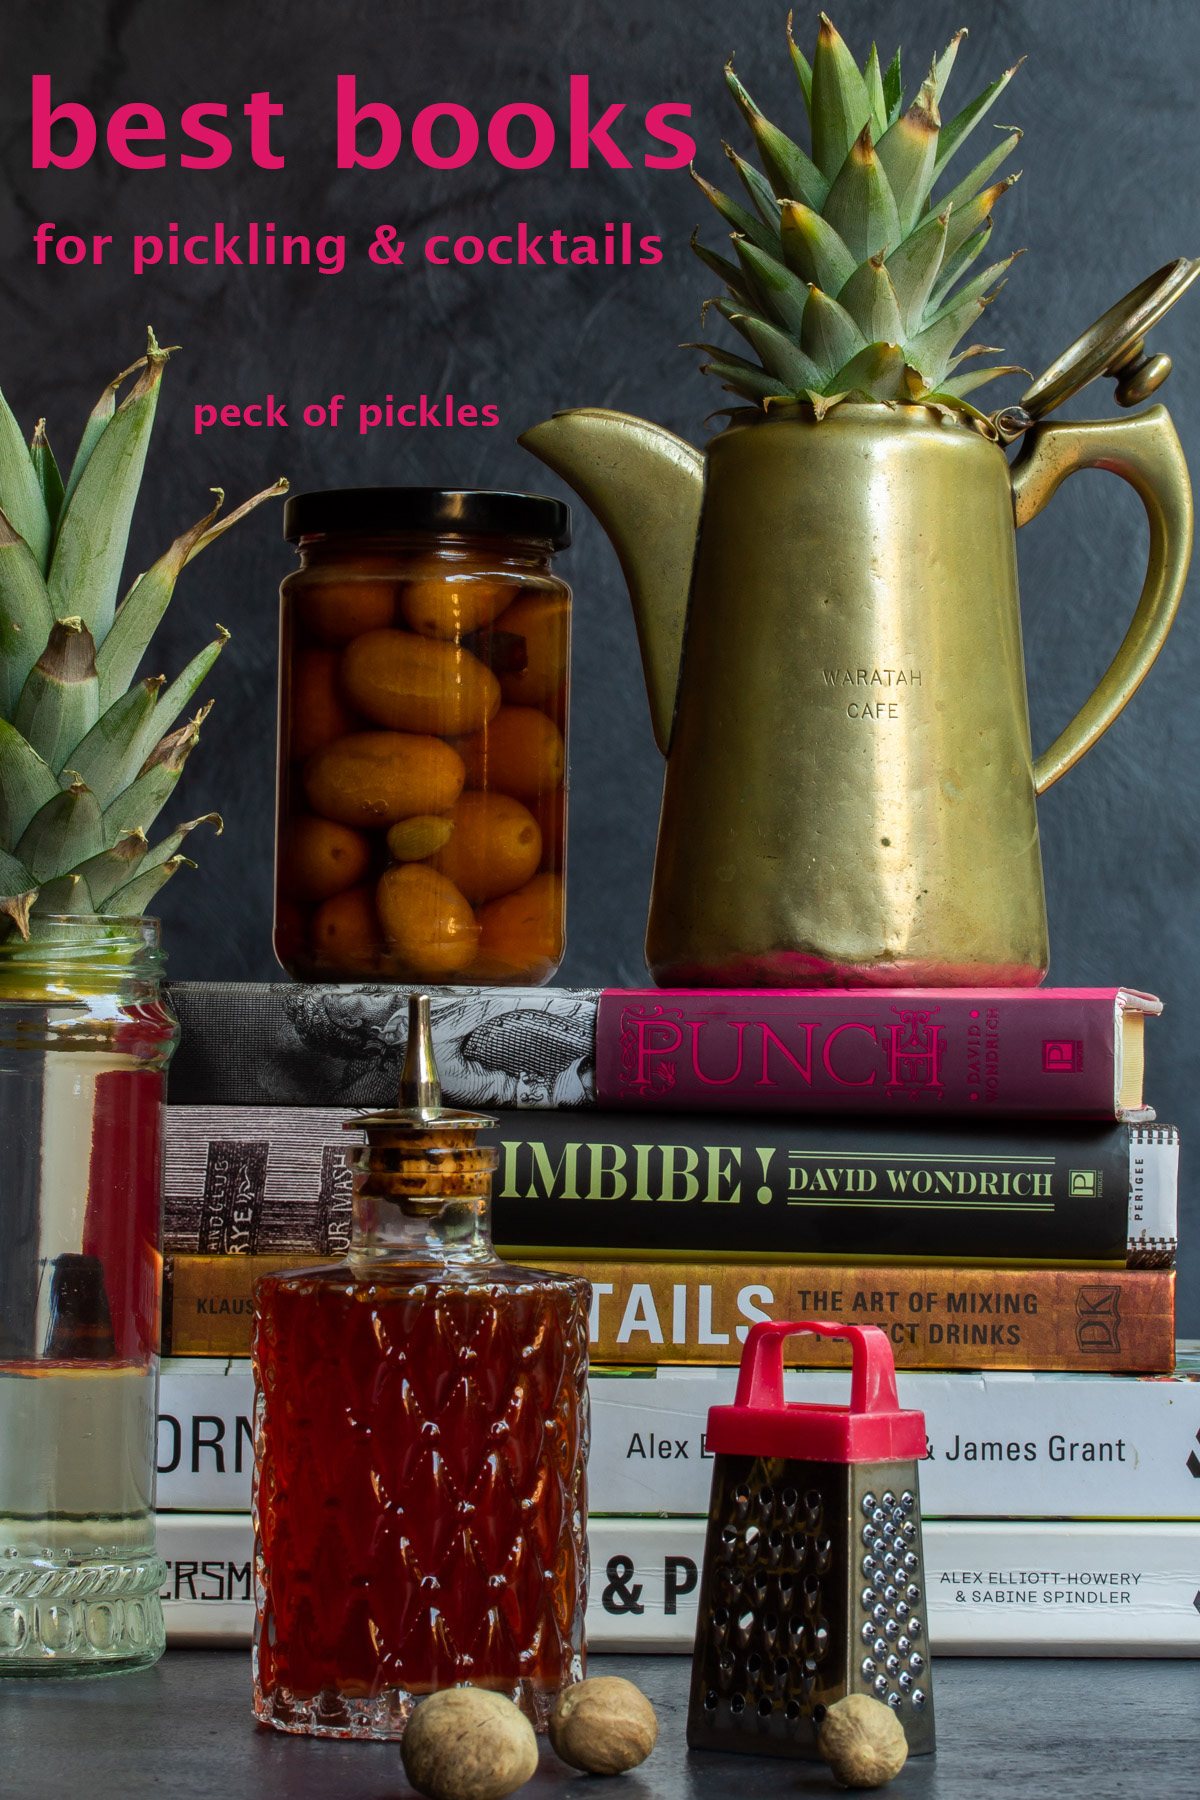 pickling and cocktail books with pickles, bitters, pineapple plants, nutmeg grater